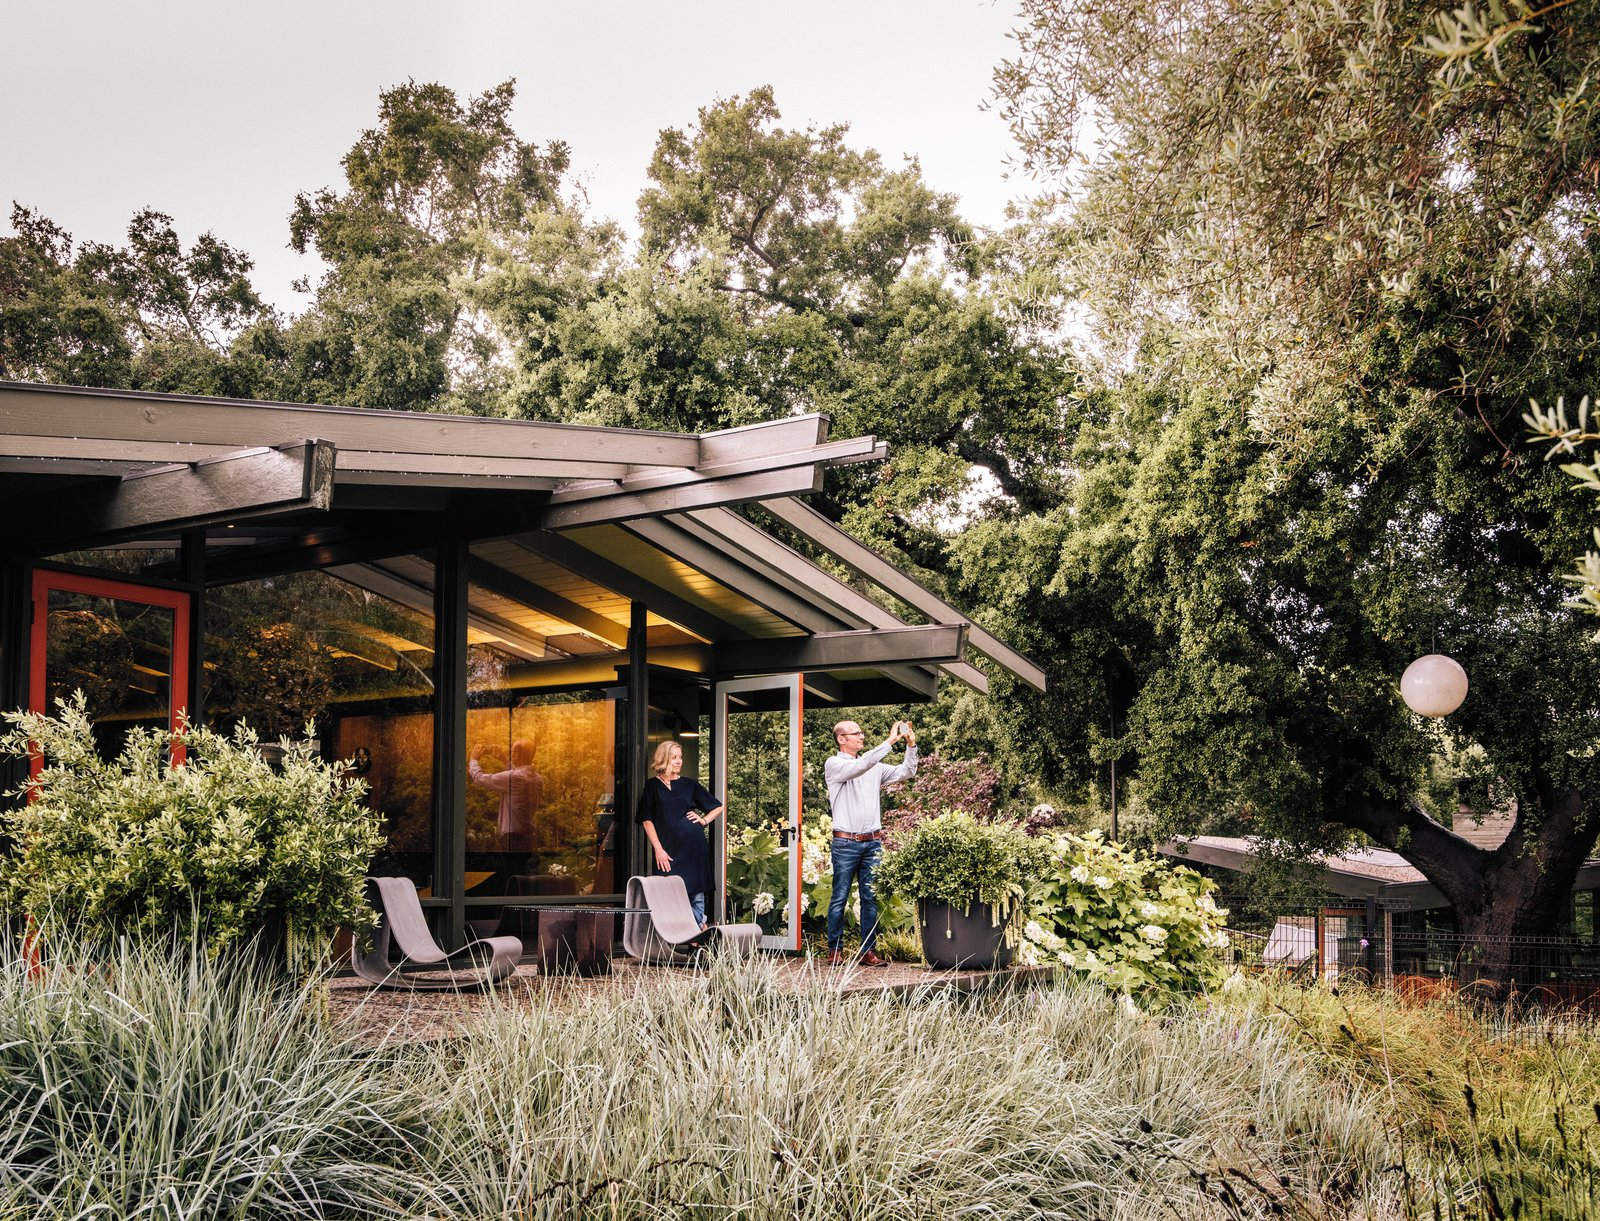 Fields of native grasses connect the main residence, situated at the top of the slope, to the new structures scattered below. Tagged: Outdoor, Back Yard, Front Yard, Side Yard, Garden, Trees, Shrubs, and Raised Planters.  Backyard Daydream from Creative Revival of a Modernist Gem